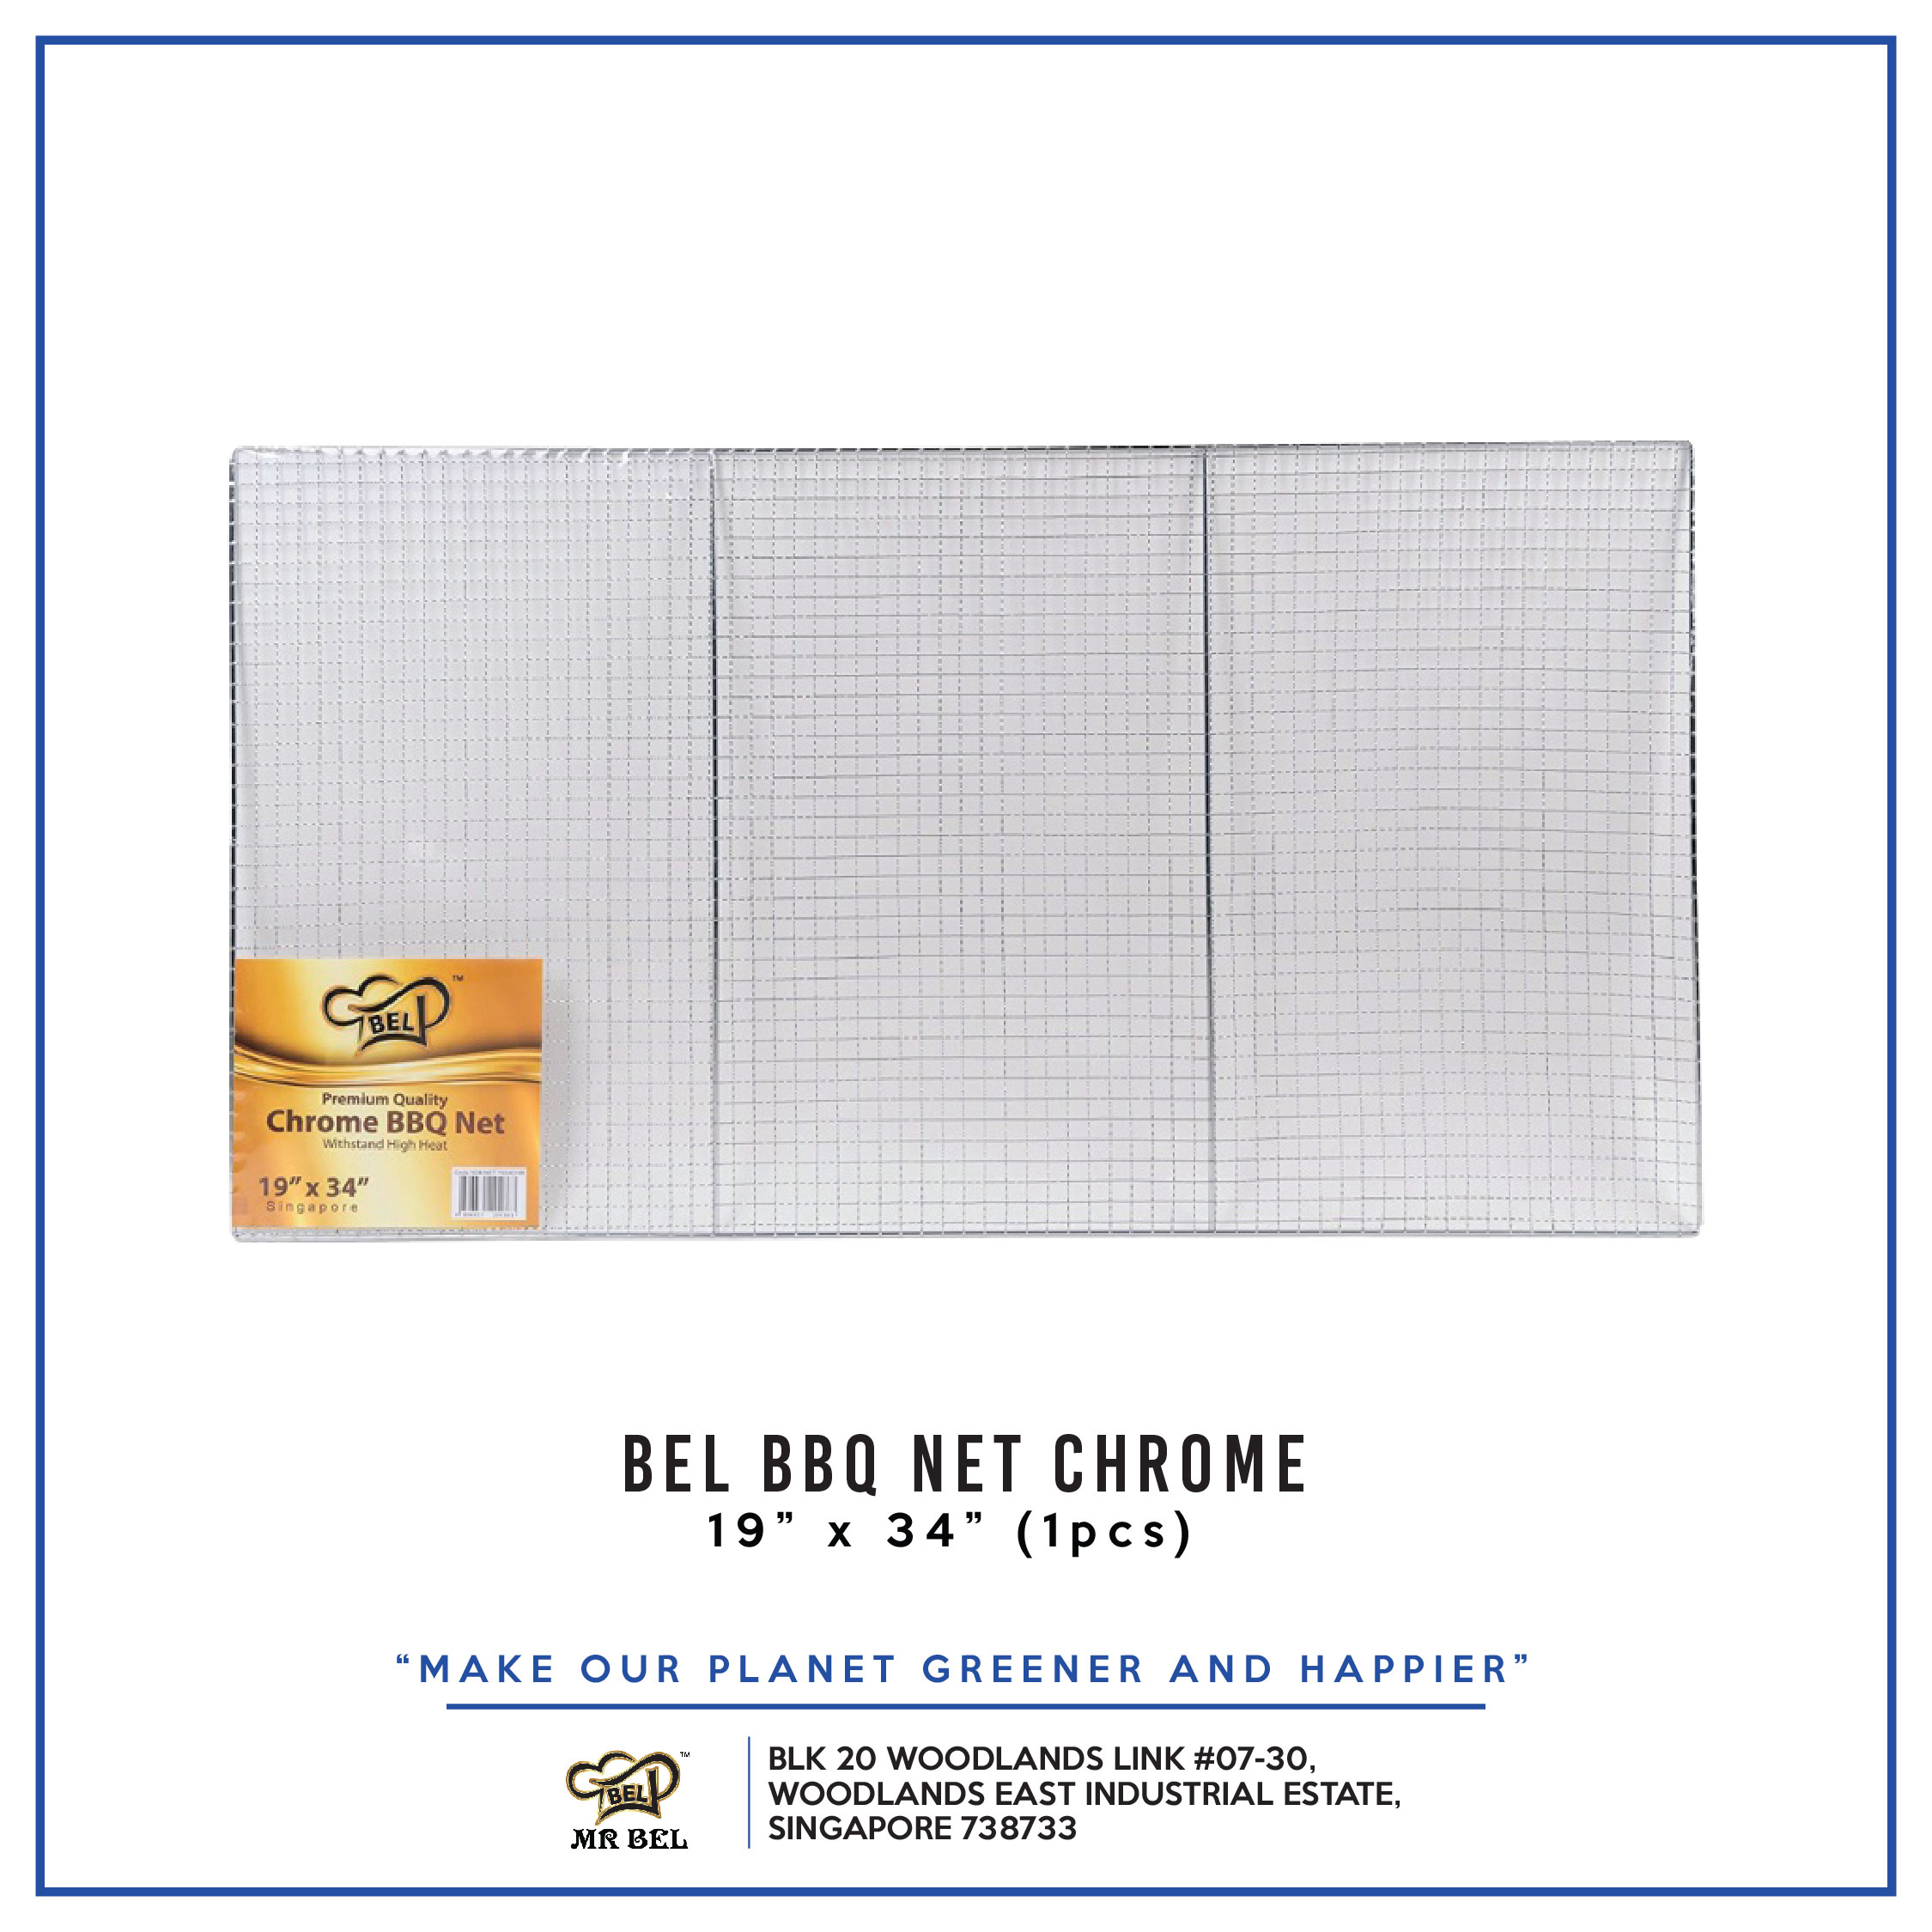 Bel BBQ NET 19  X 34  CHROME per pack - 1 Carton (20packs)